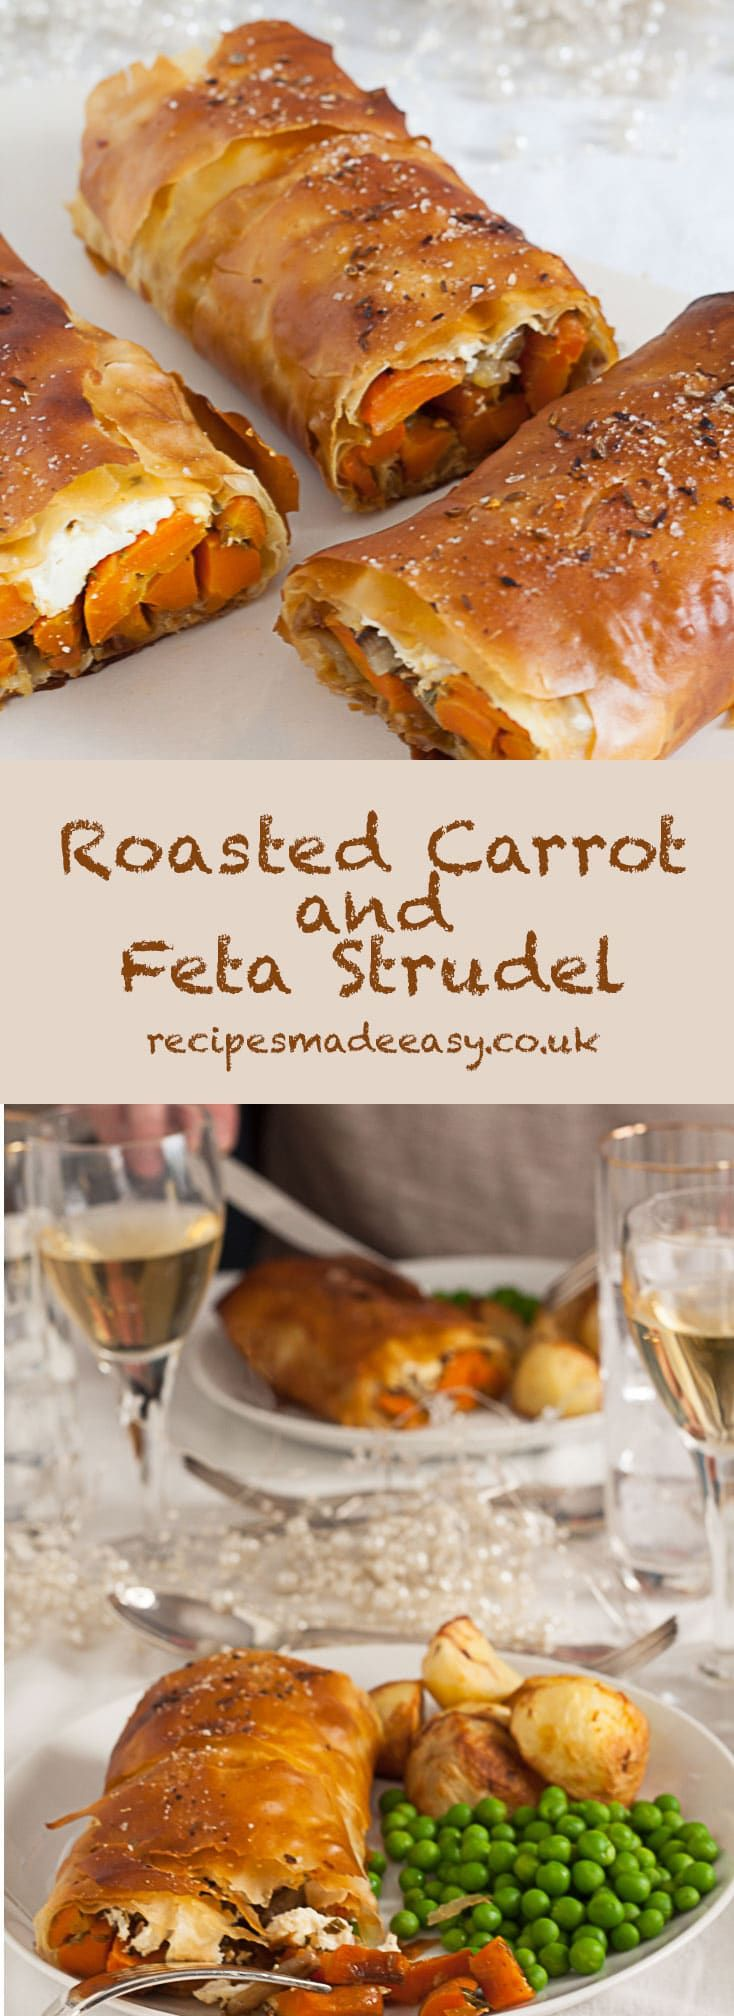 Roasted spiced carrot and Feta Strudel